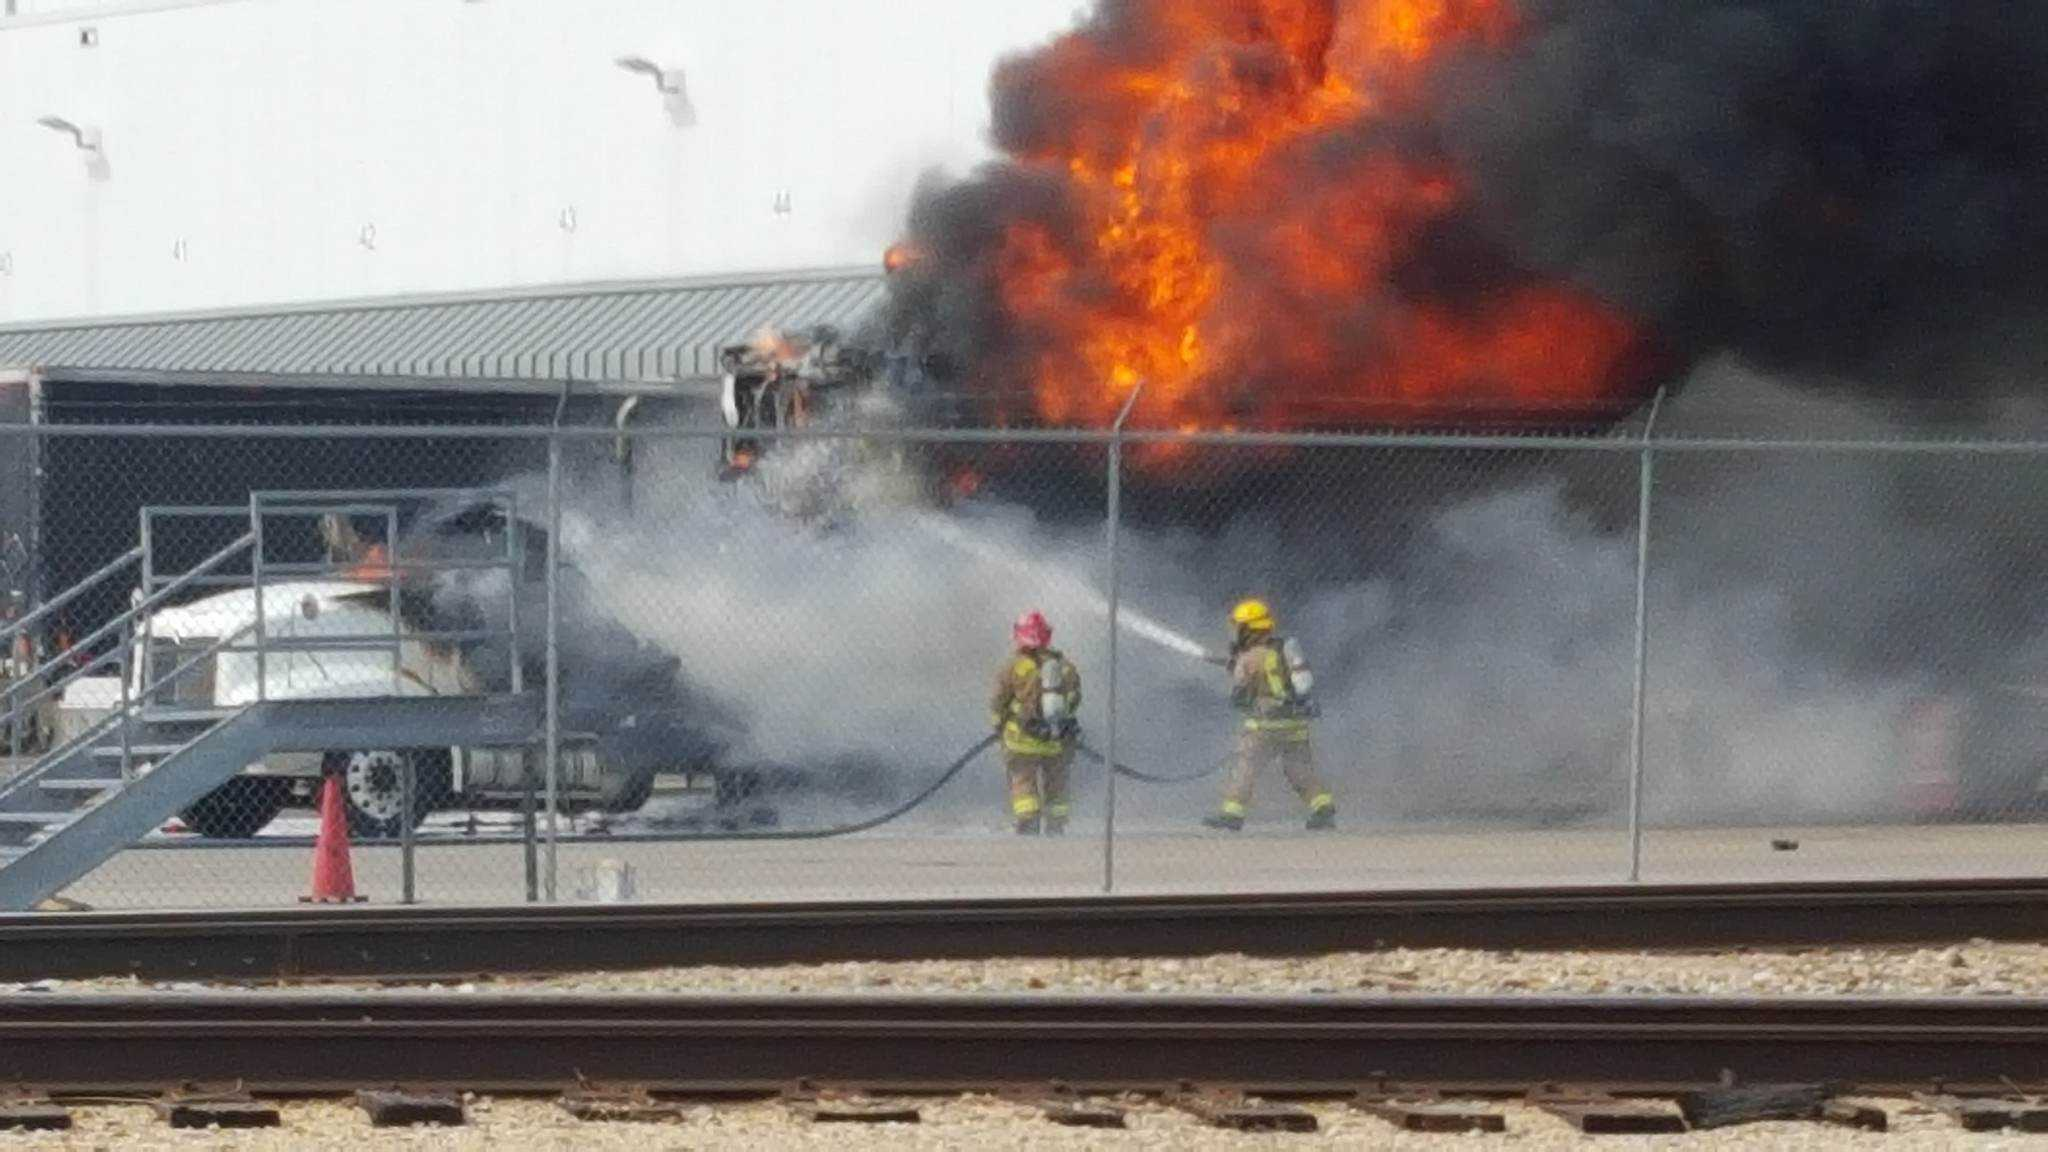 Fire in Springdale